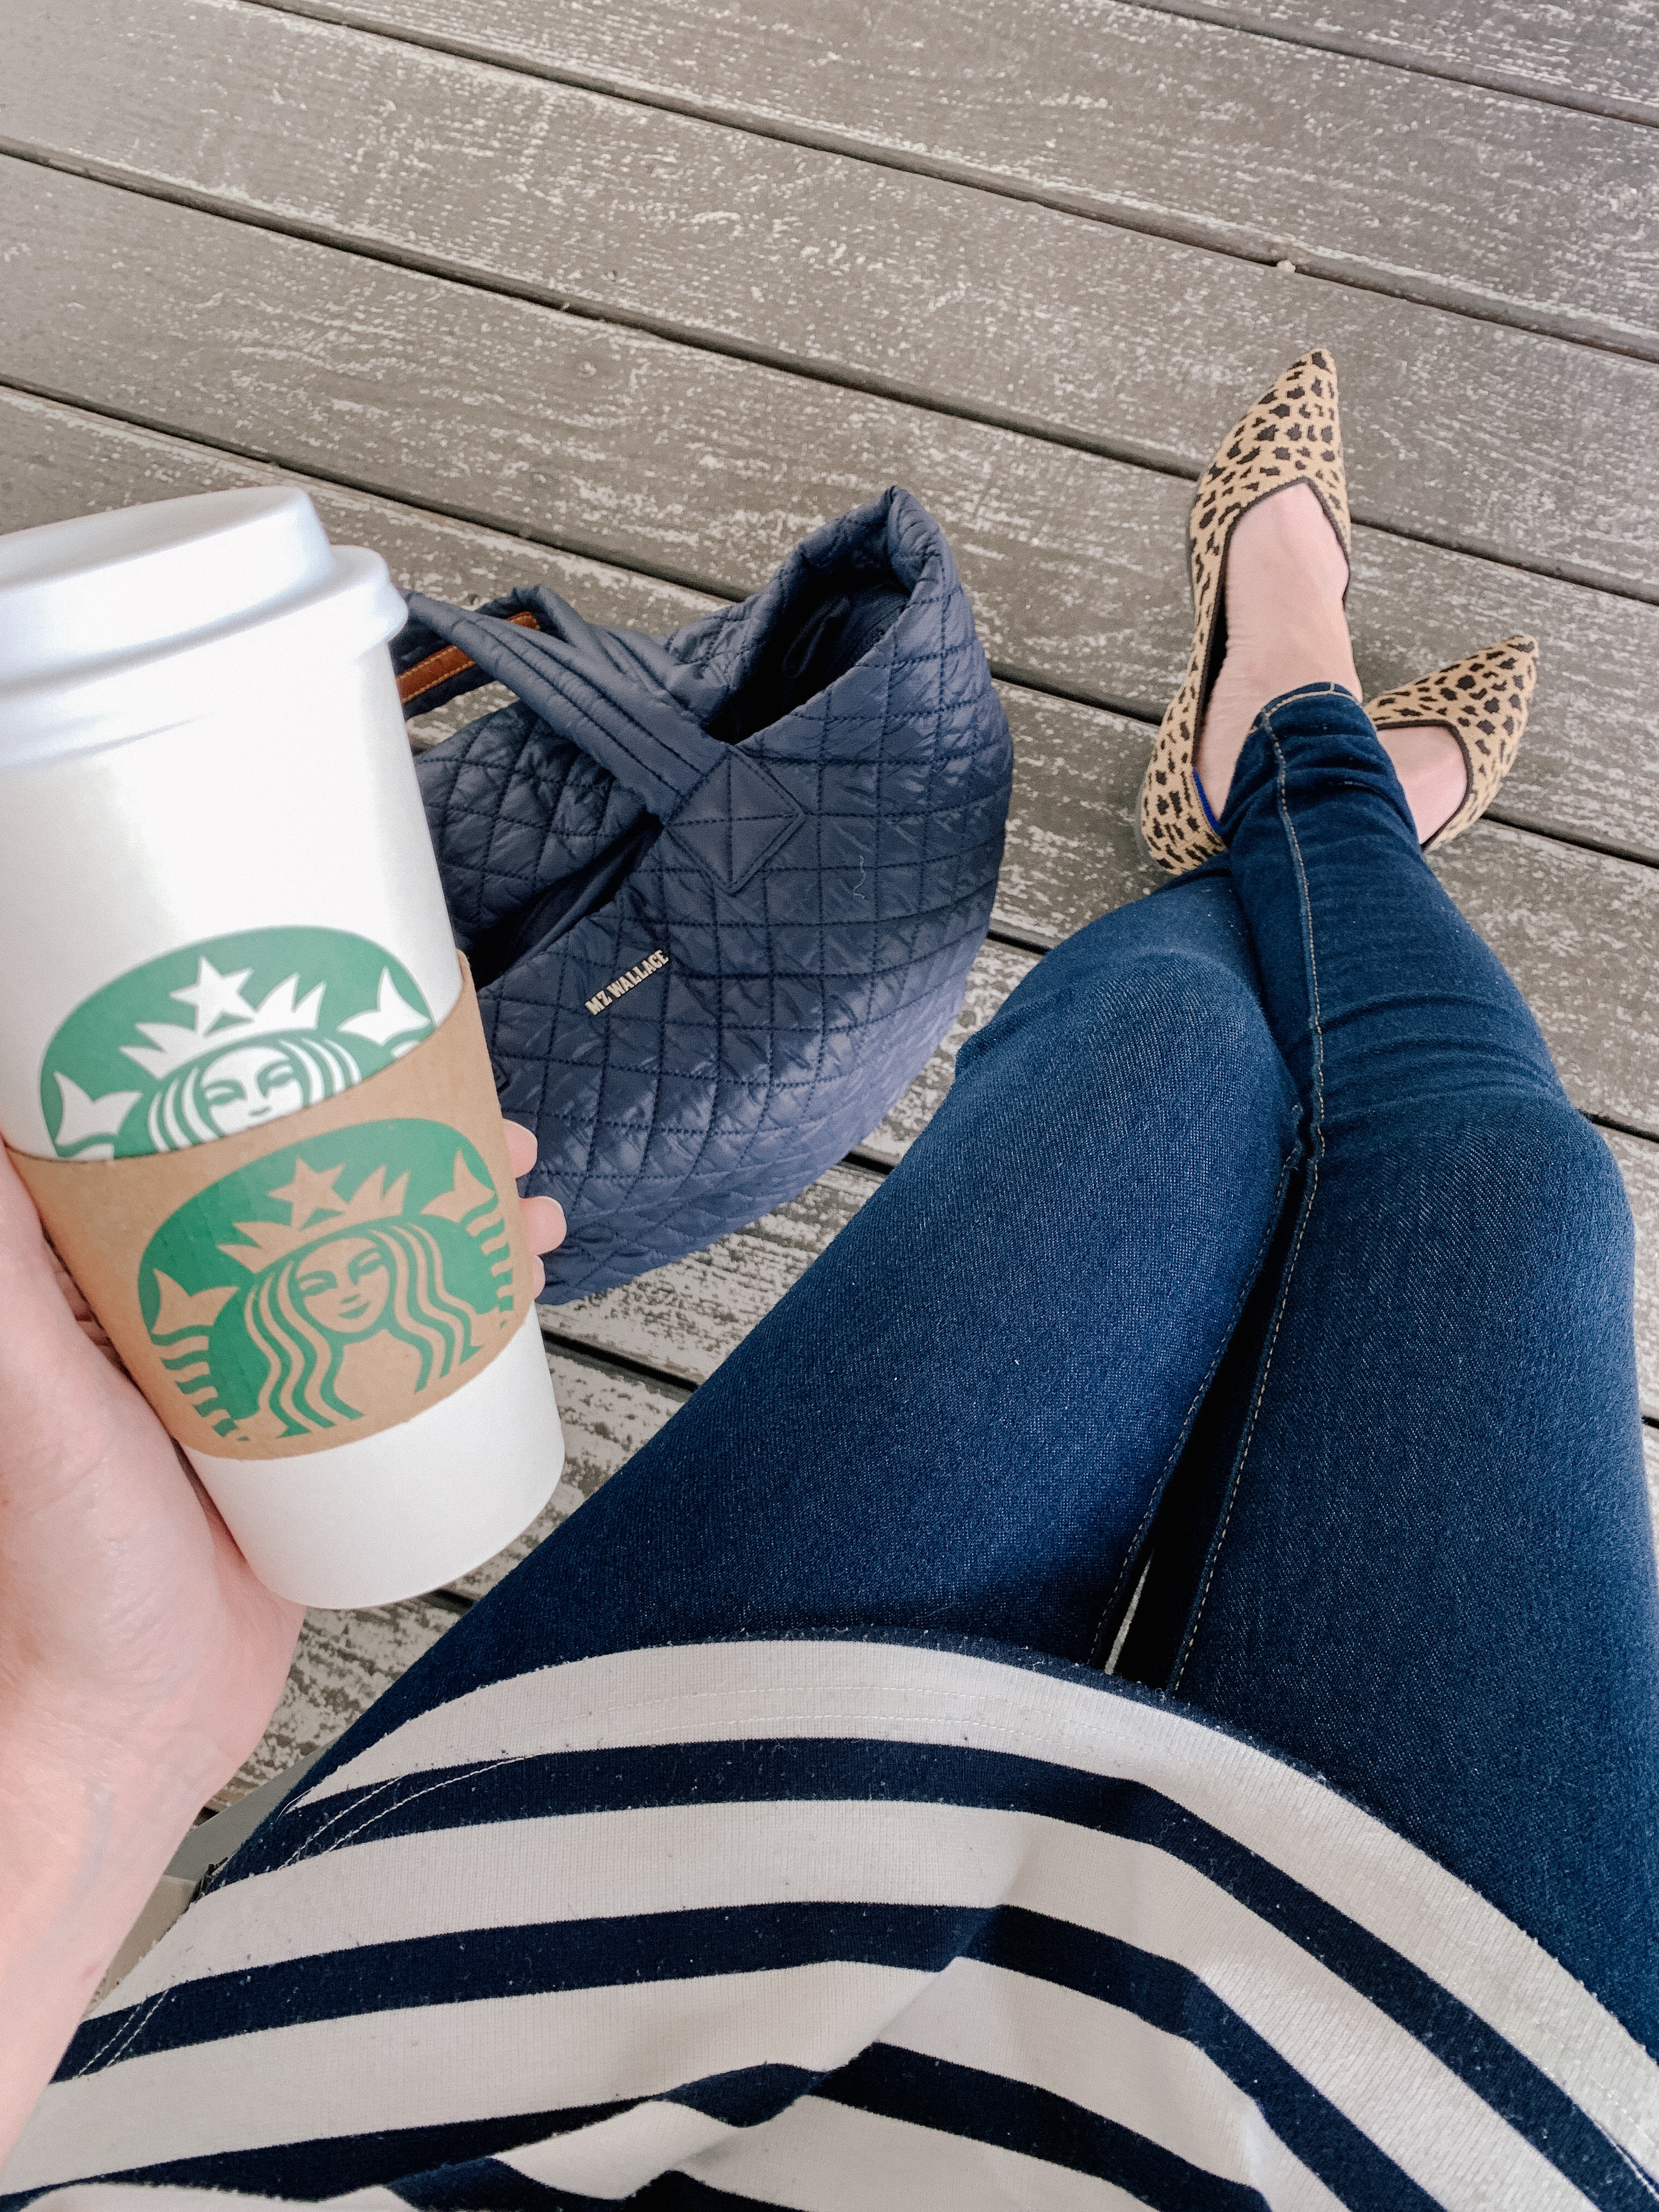 Starbucks & MZ WALLACE & Rothy's shoes